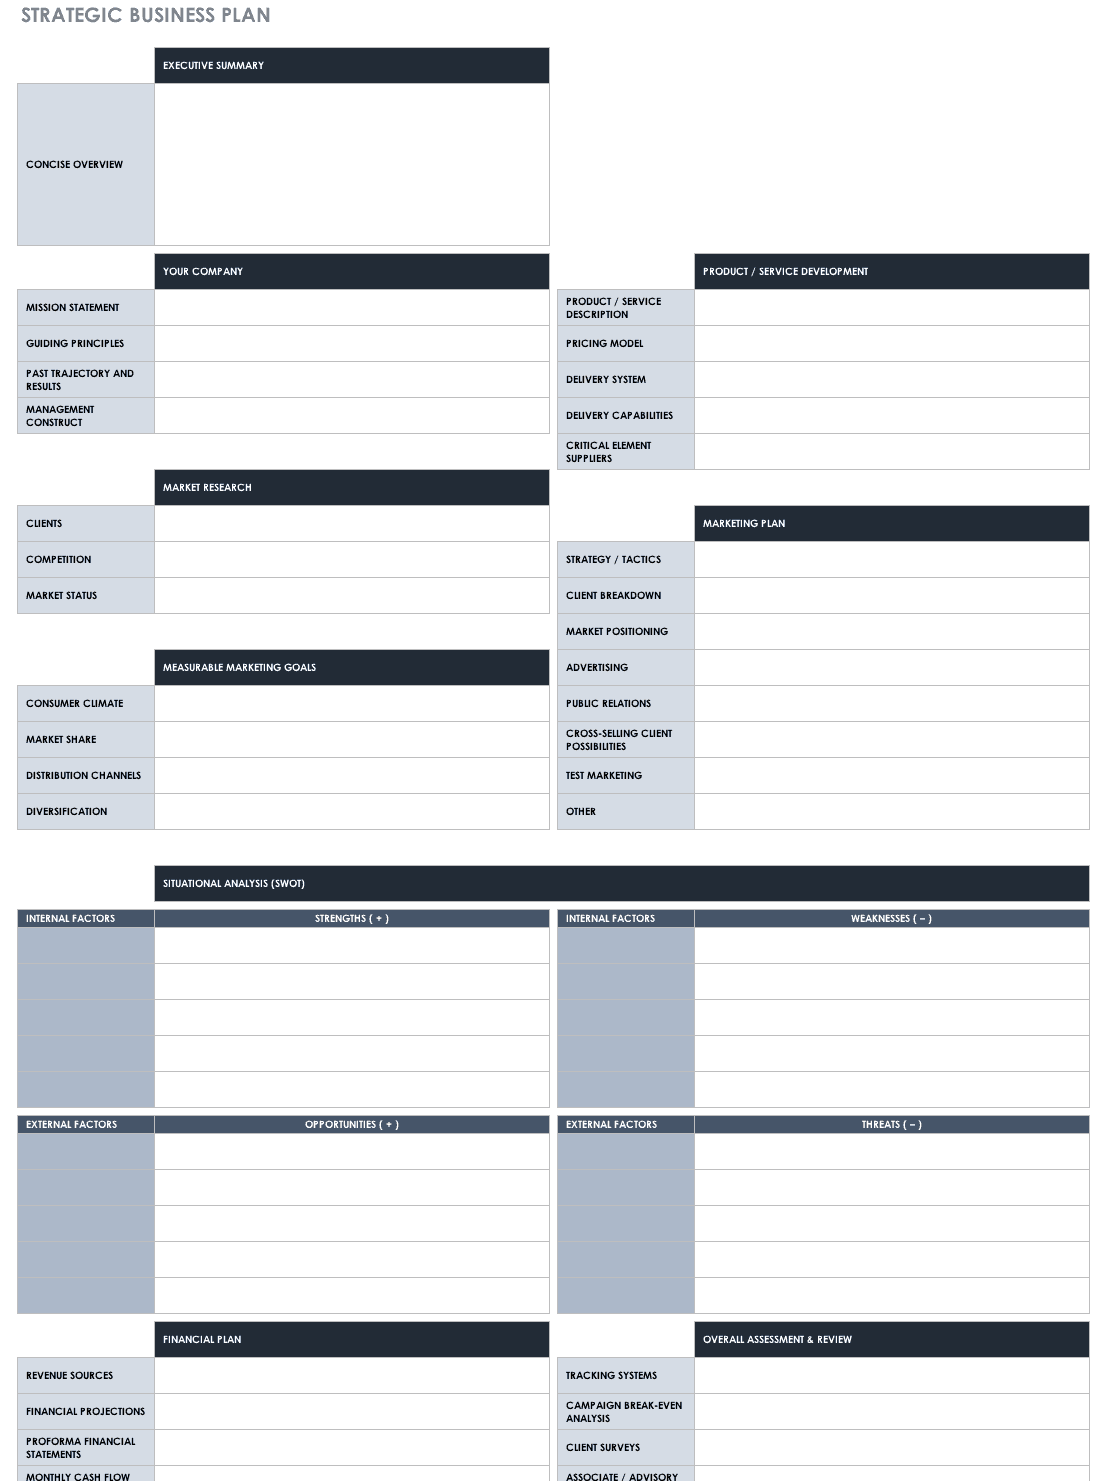 Free strategic planning templates smartsheet strategic business plan template wajeb Gallery